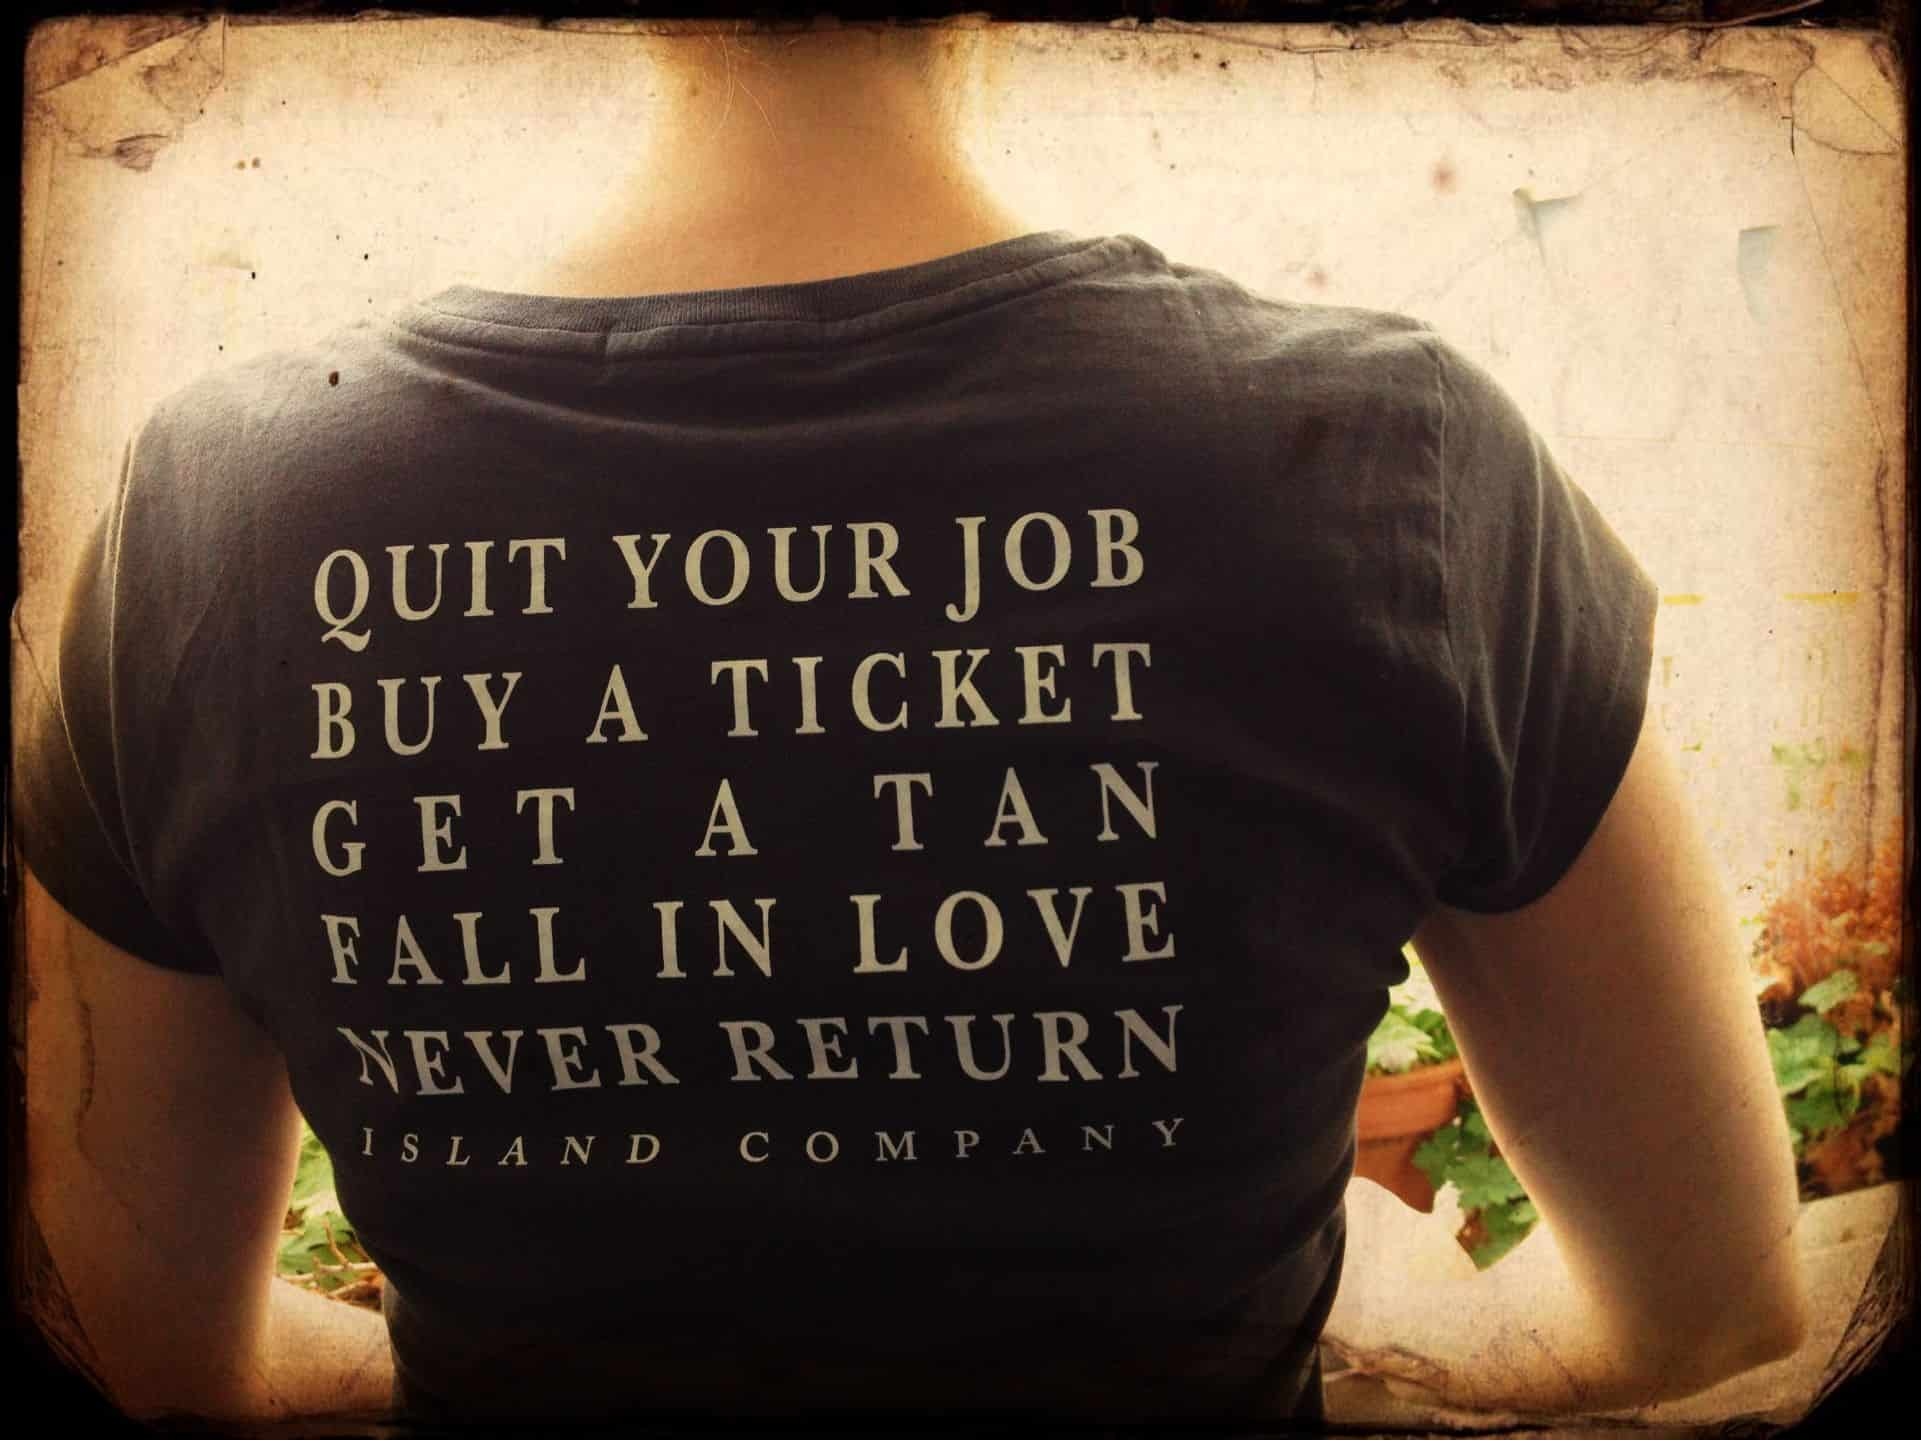 Island Company Quit Your Job shirt